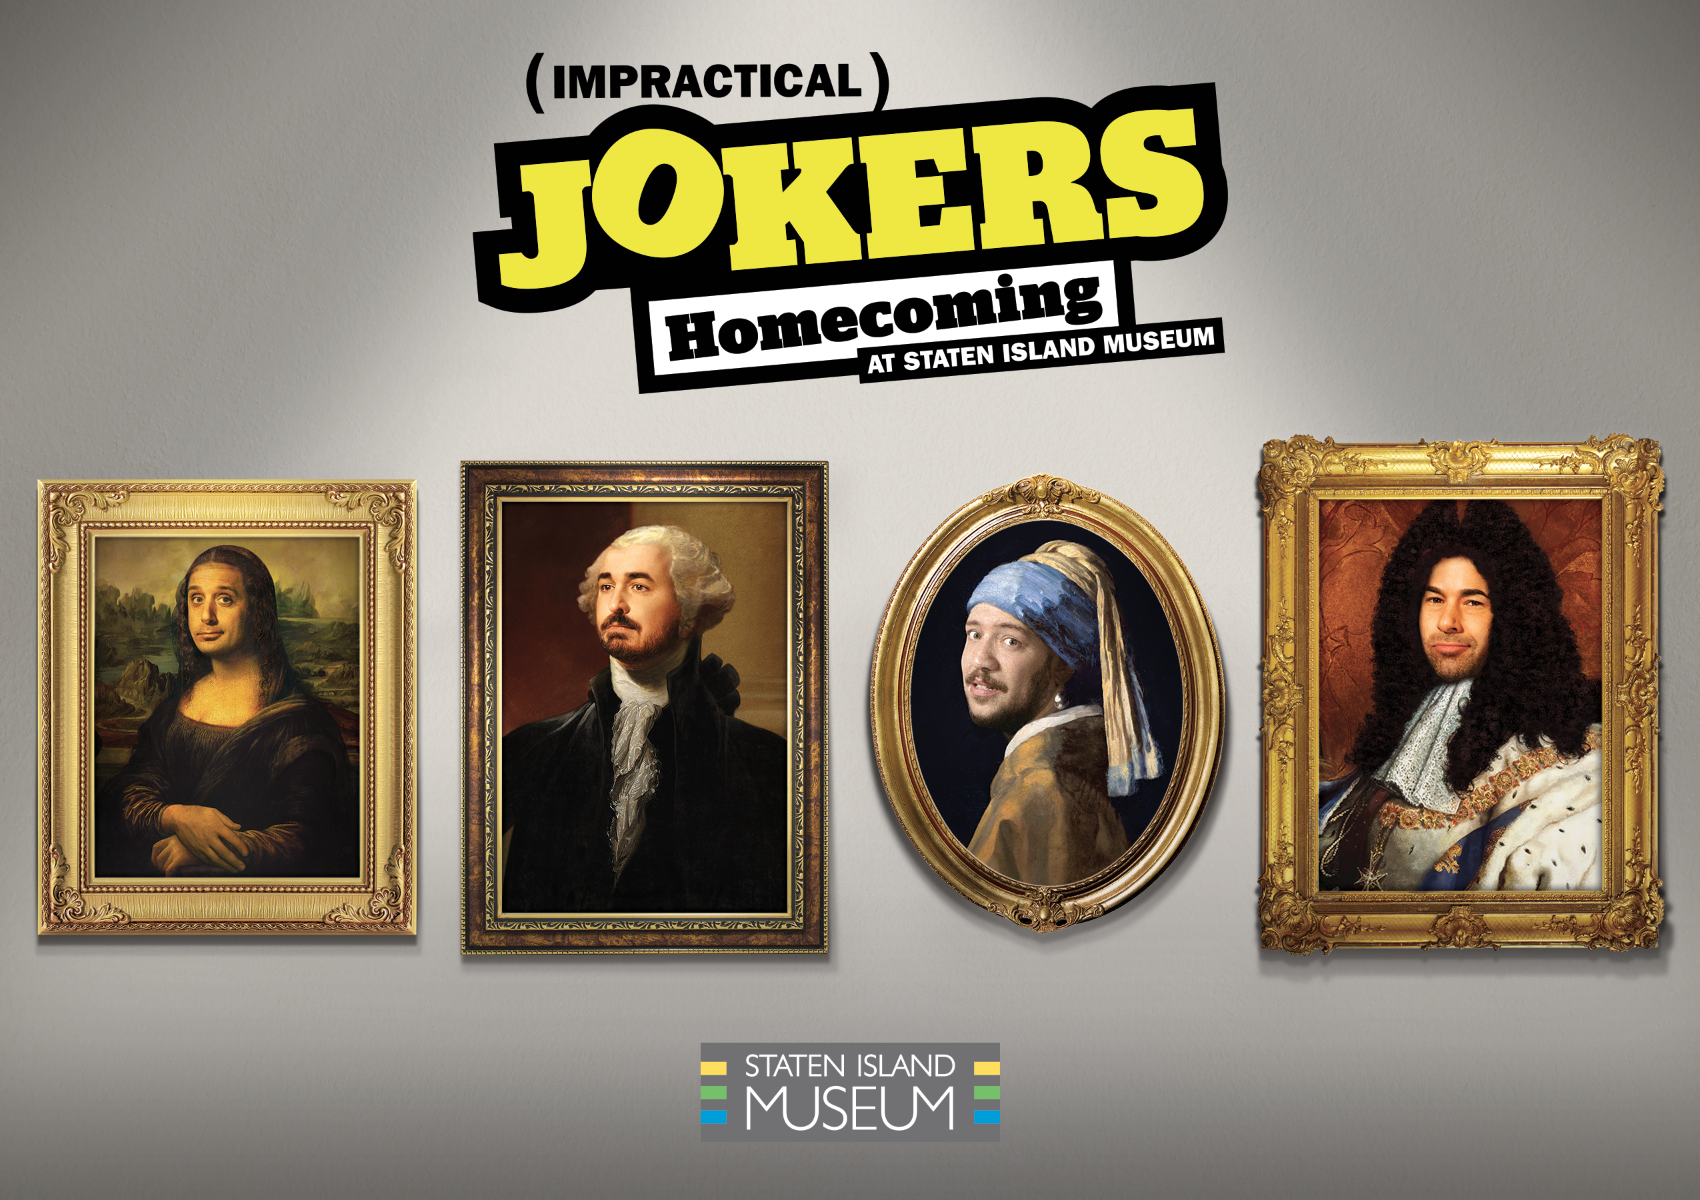 A postcard advertising the Impractical Jokers exhibit at the Staten Island Museum. I came up with this layout after discovering that they had painted portraits of the guys from another project. I then used stock images to add the frames and create the environment around it. (built in CMYK, hence the muted colors)